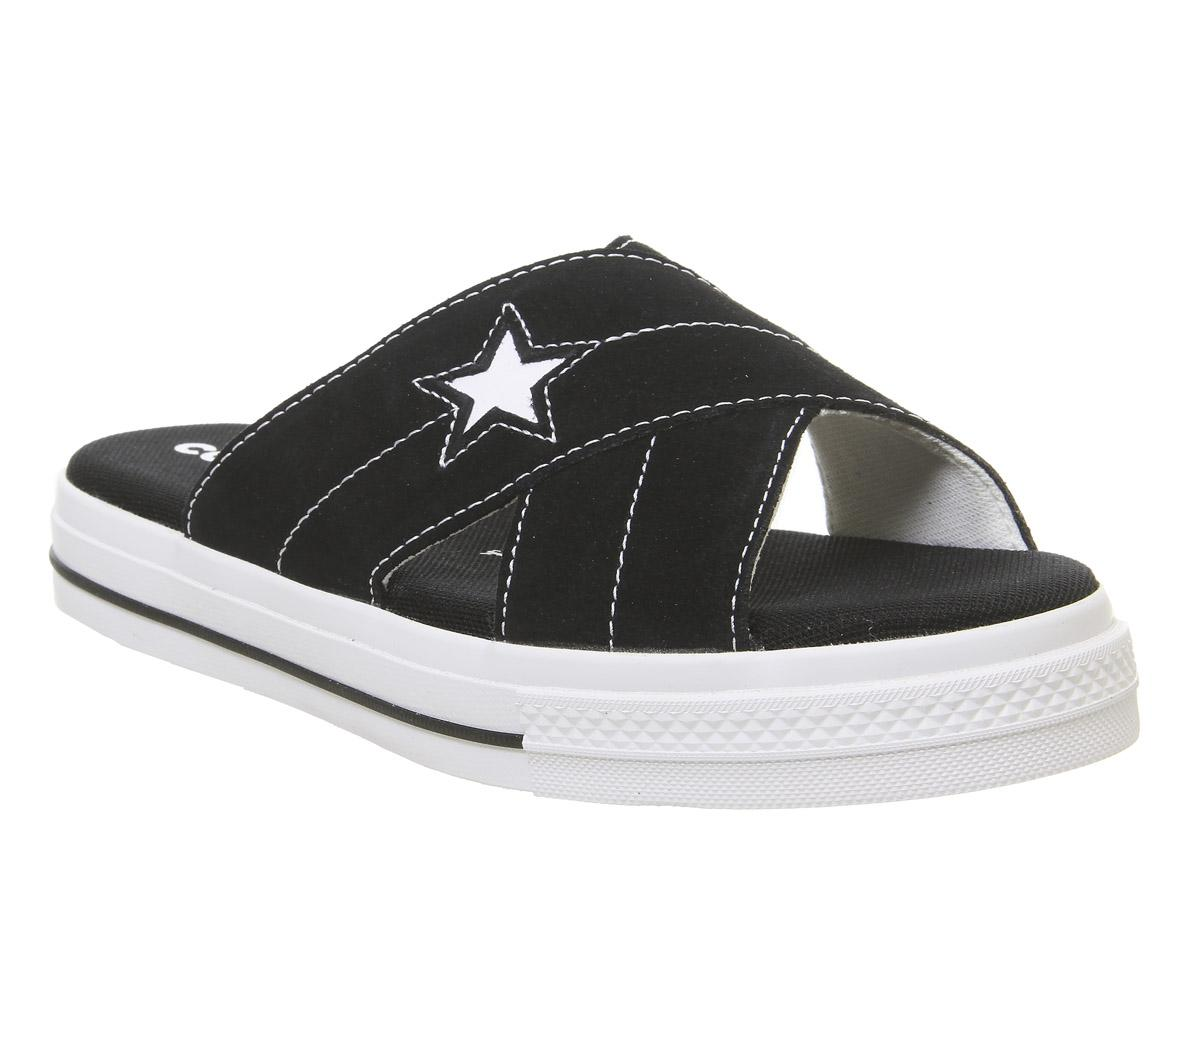 Converse One Star Sandals